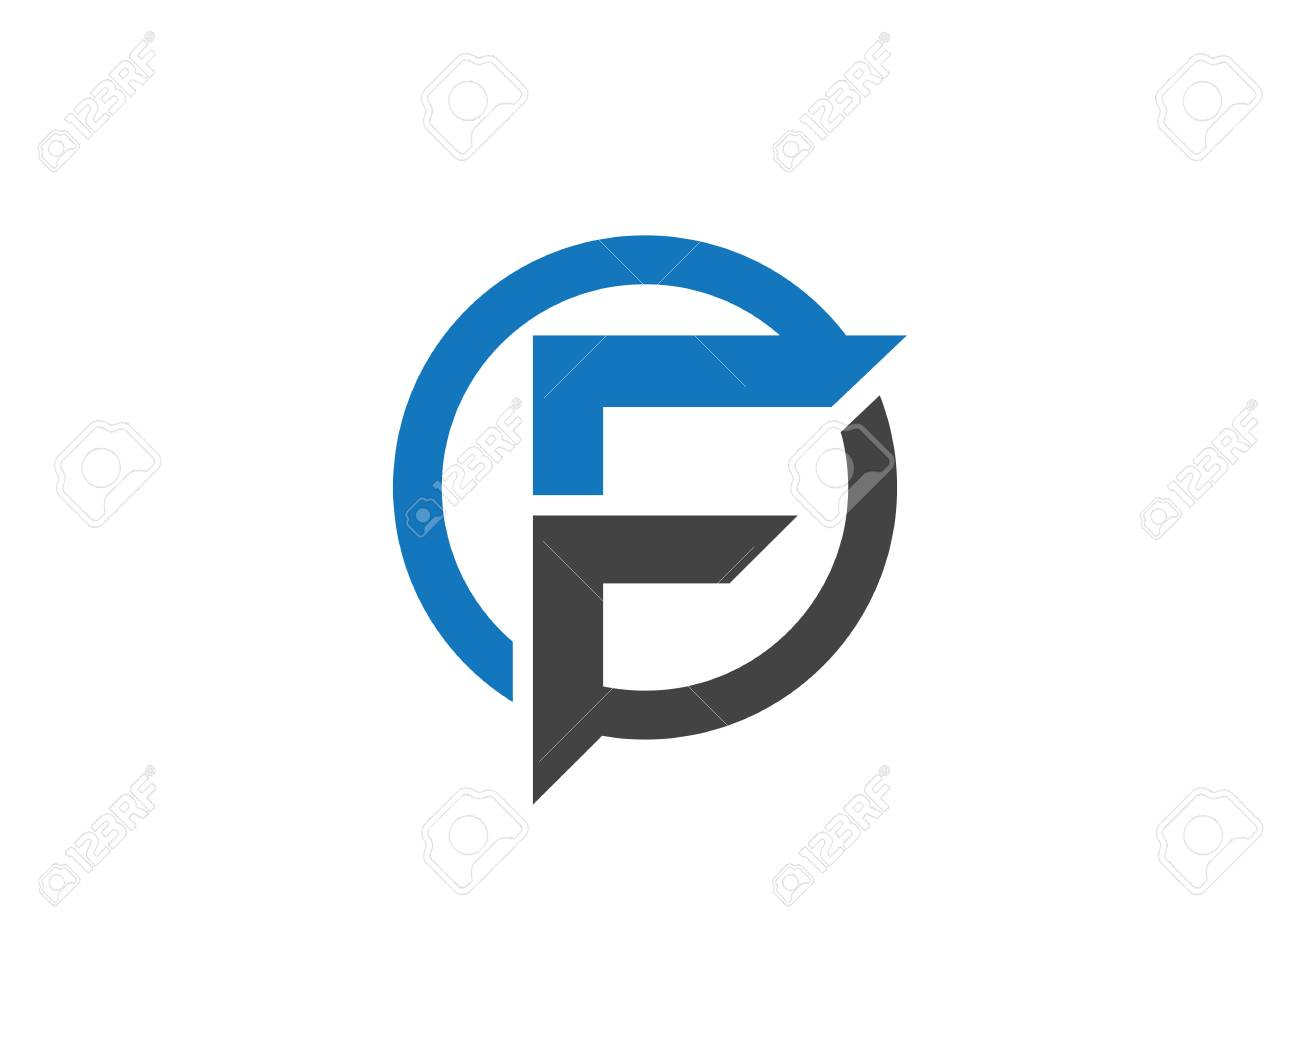 F Letter Logo Business professional logo template - 73339393